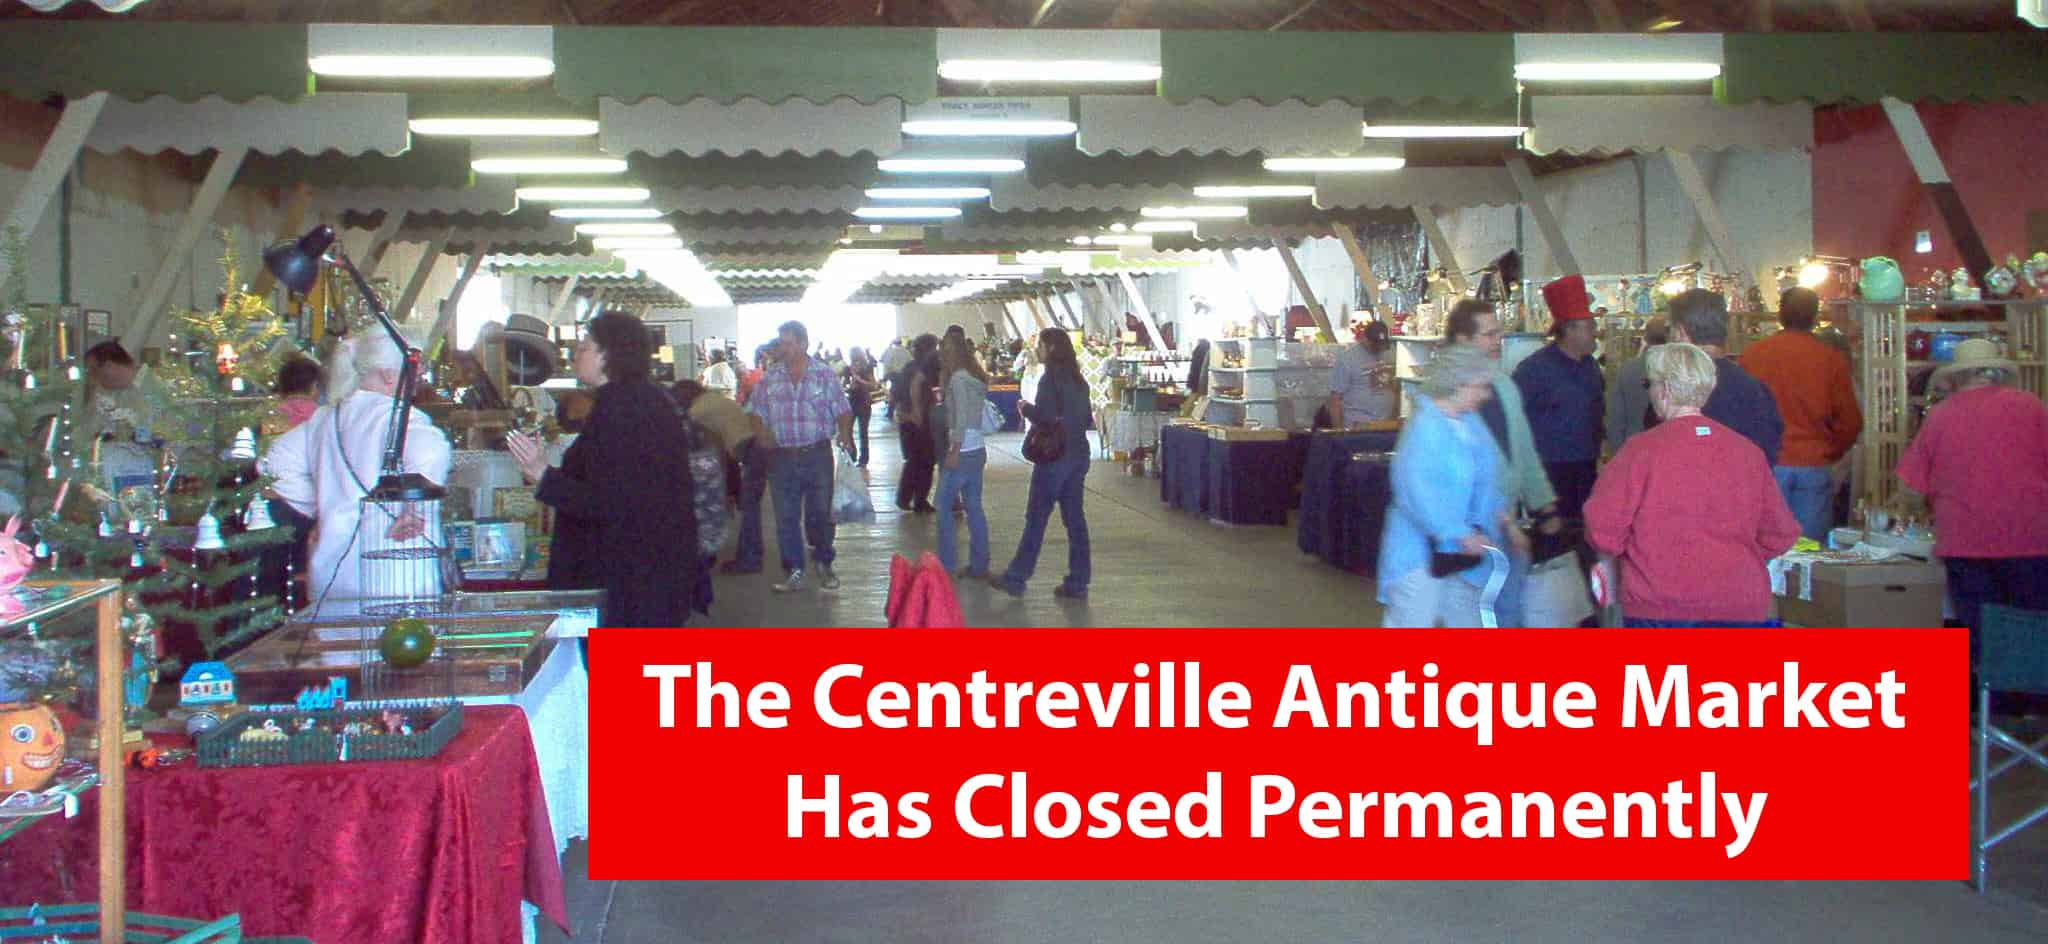 Centreville Michigan Antique Market permanently closed